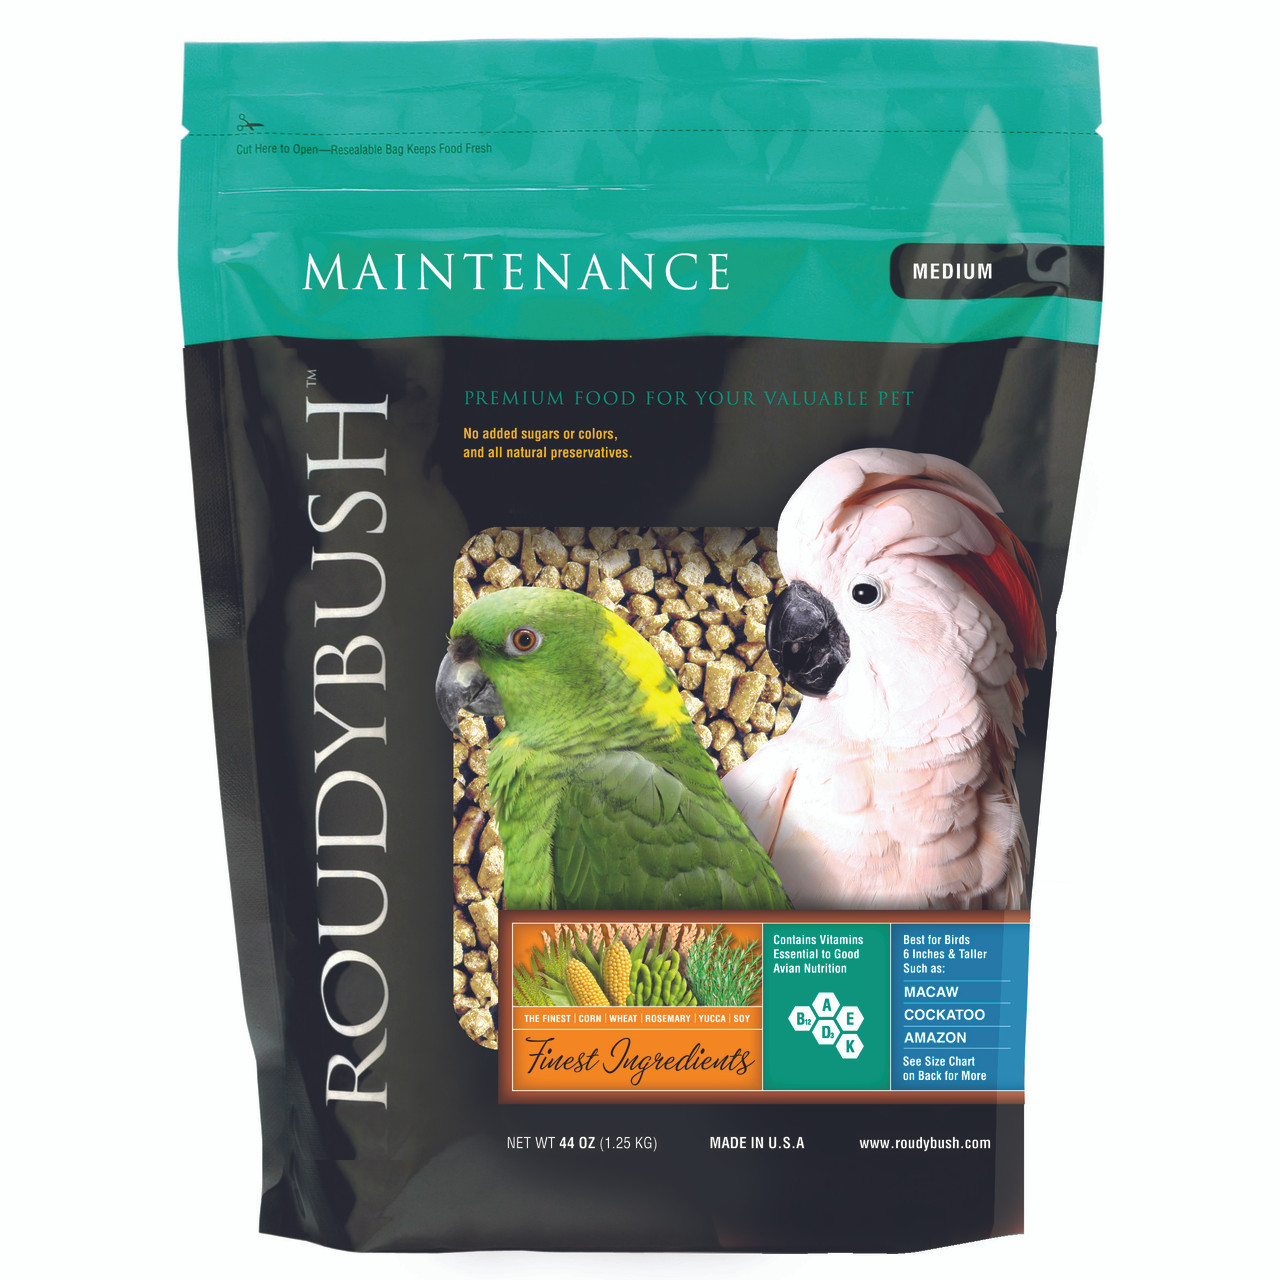 Roudybush Daily Maintenance Medium Bird Food